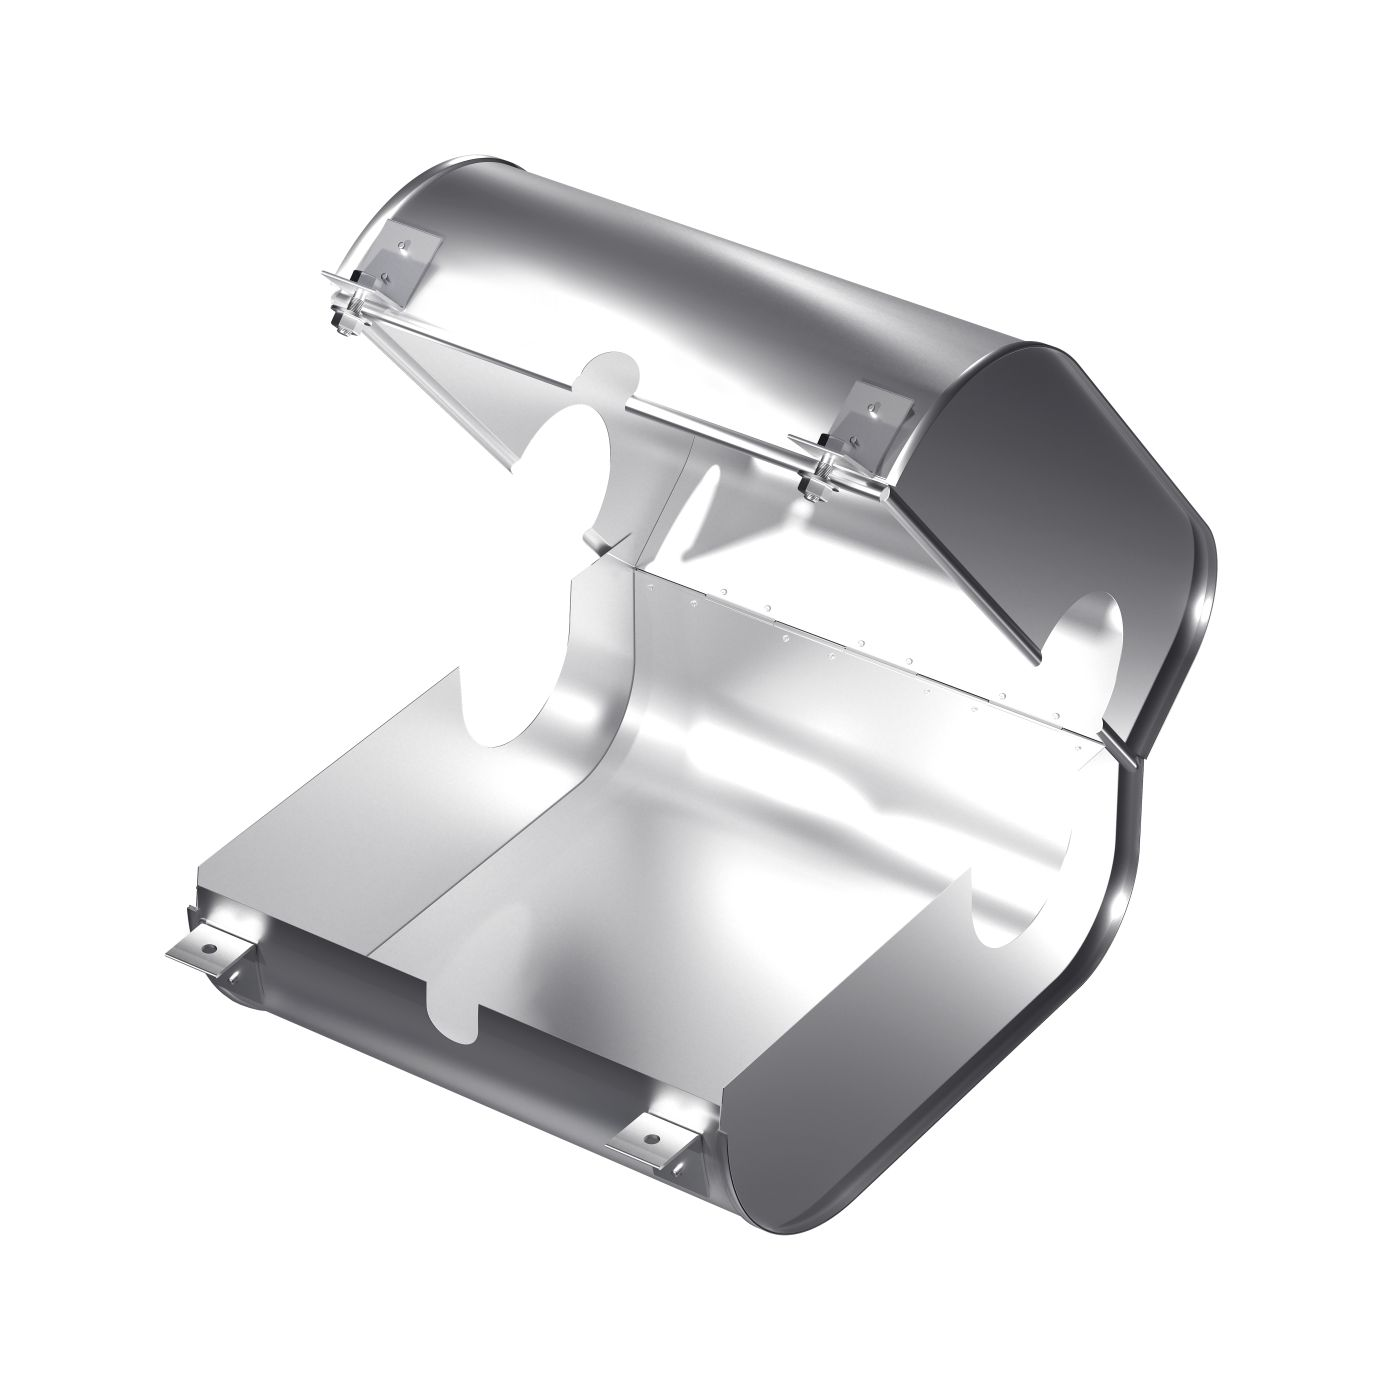 Protective cover_KZF-A_Bolted_Open without flange